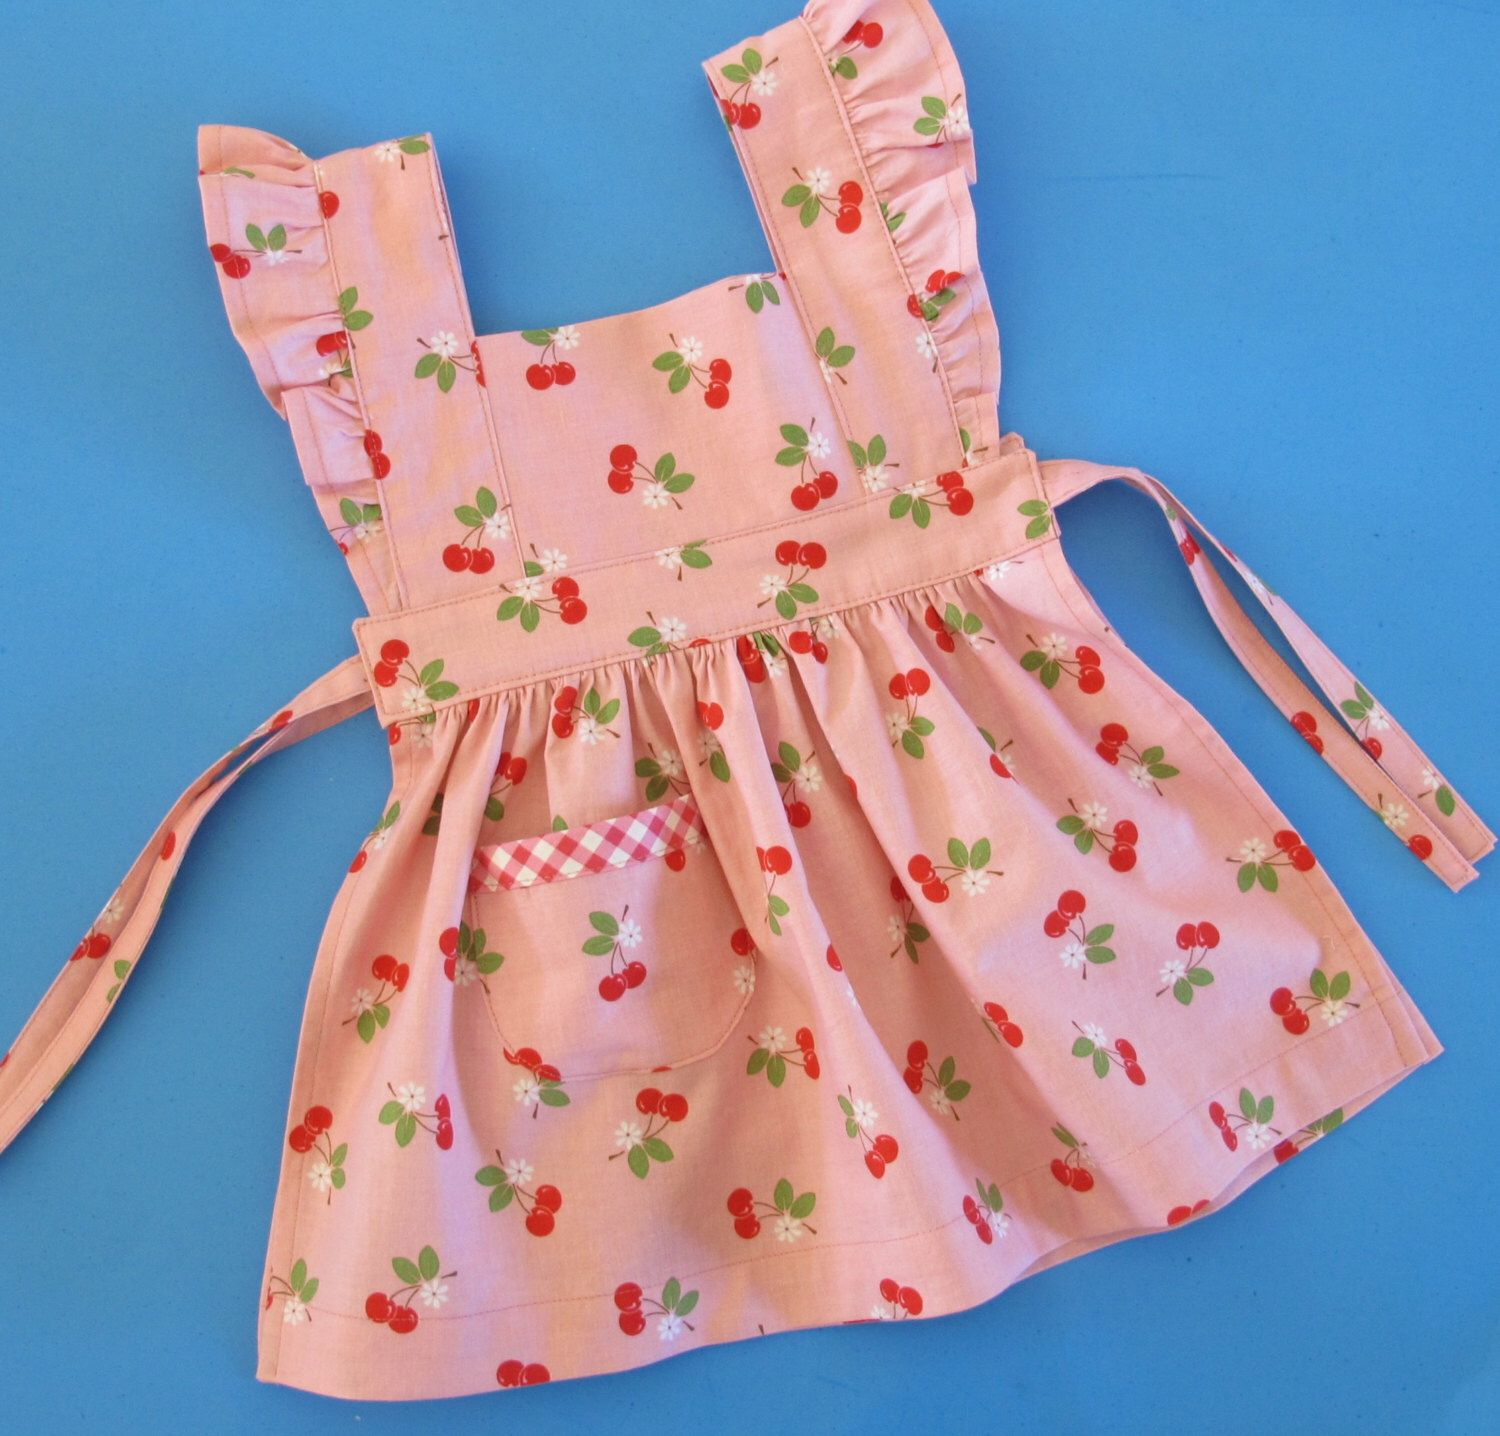 Baby Pinafore Pattern - pinafore pattern for baby - Pinafore PDF ...